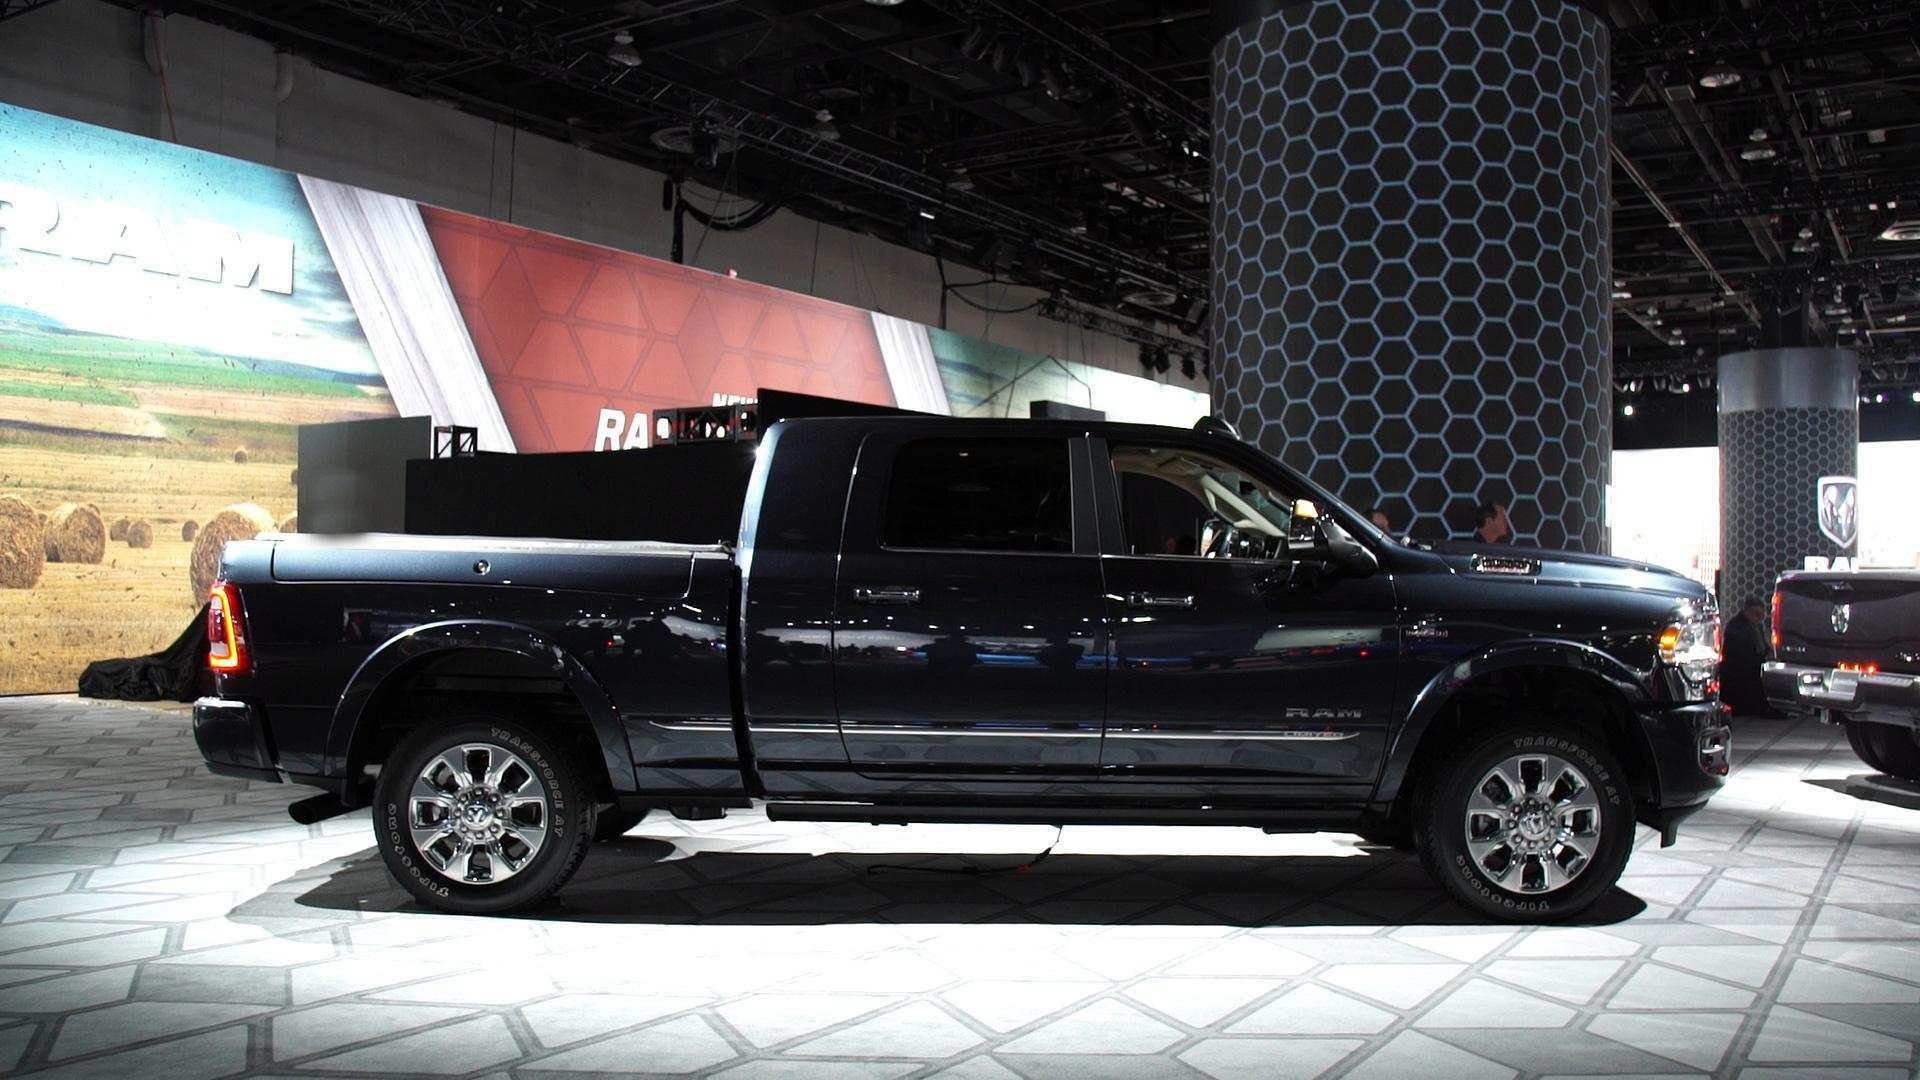 22 All New New 2019 Dodge Mega Cab 2500 Review Reviews for New 2019 Dodge Mega Cab 2500 Review